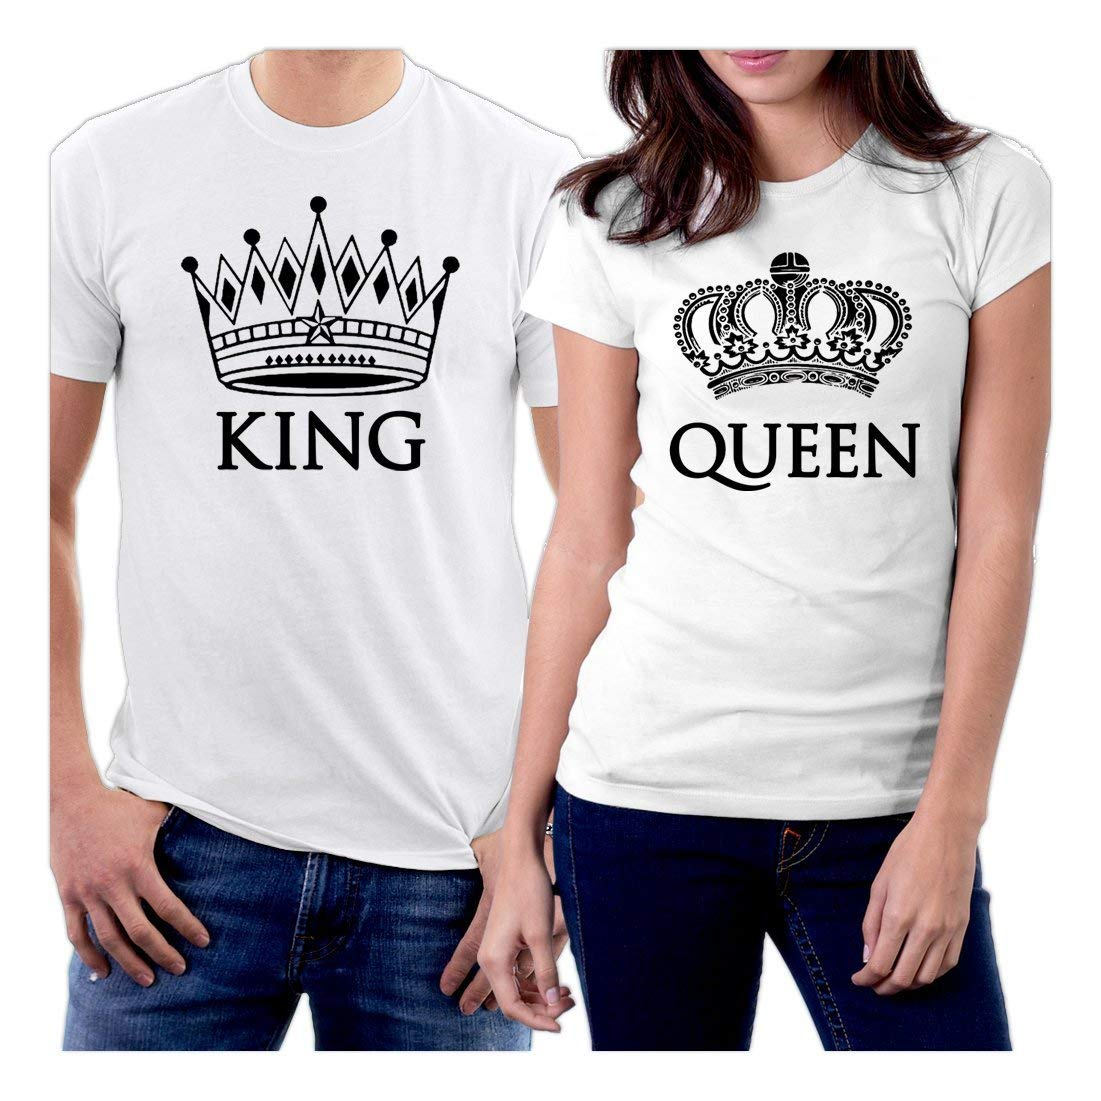 5f749087b YJQ Couple T-Shirts Galaxy King Queen Matching Short Sleeve Top Shirts  null. picontshirt King and Queen Couple T-Shirts White Crowns